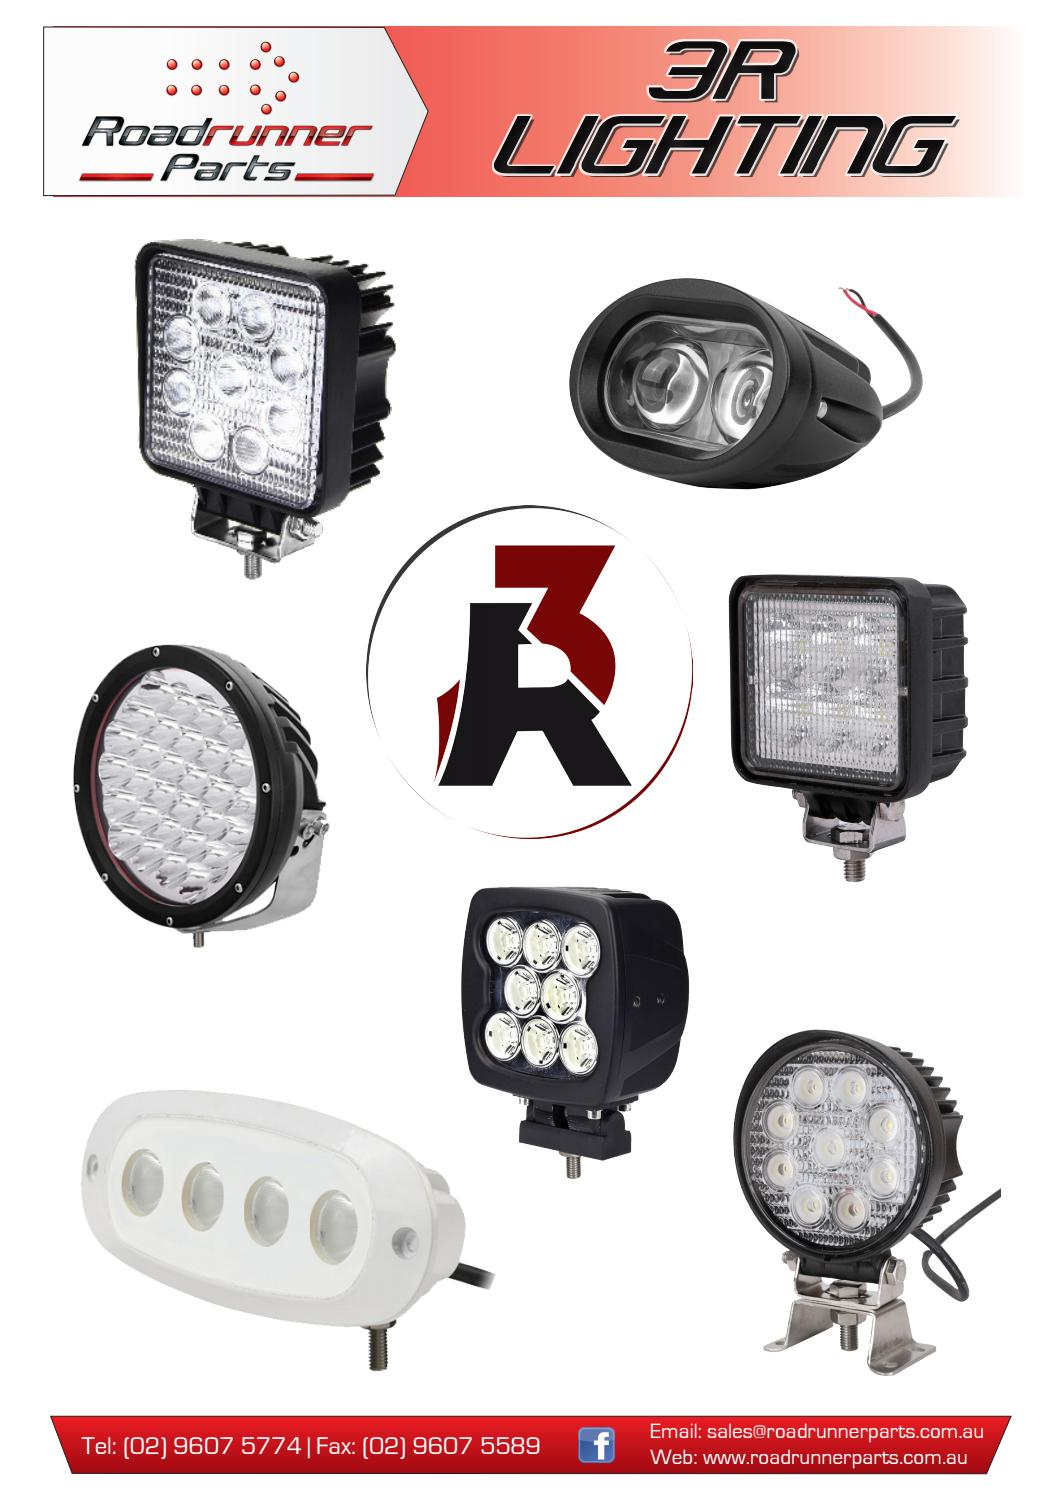 3r Lighting Catalogue 2017 By Roadrunner Parts Issuu